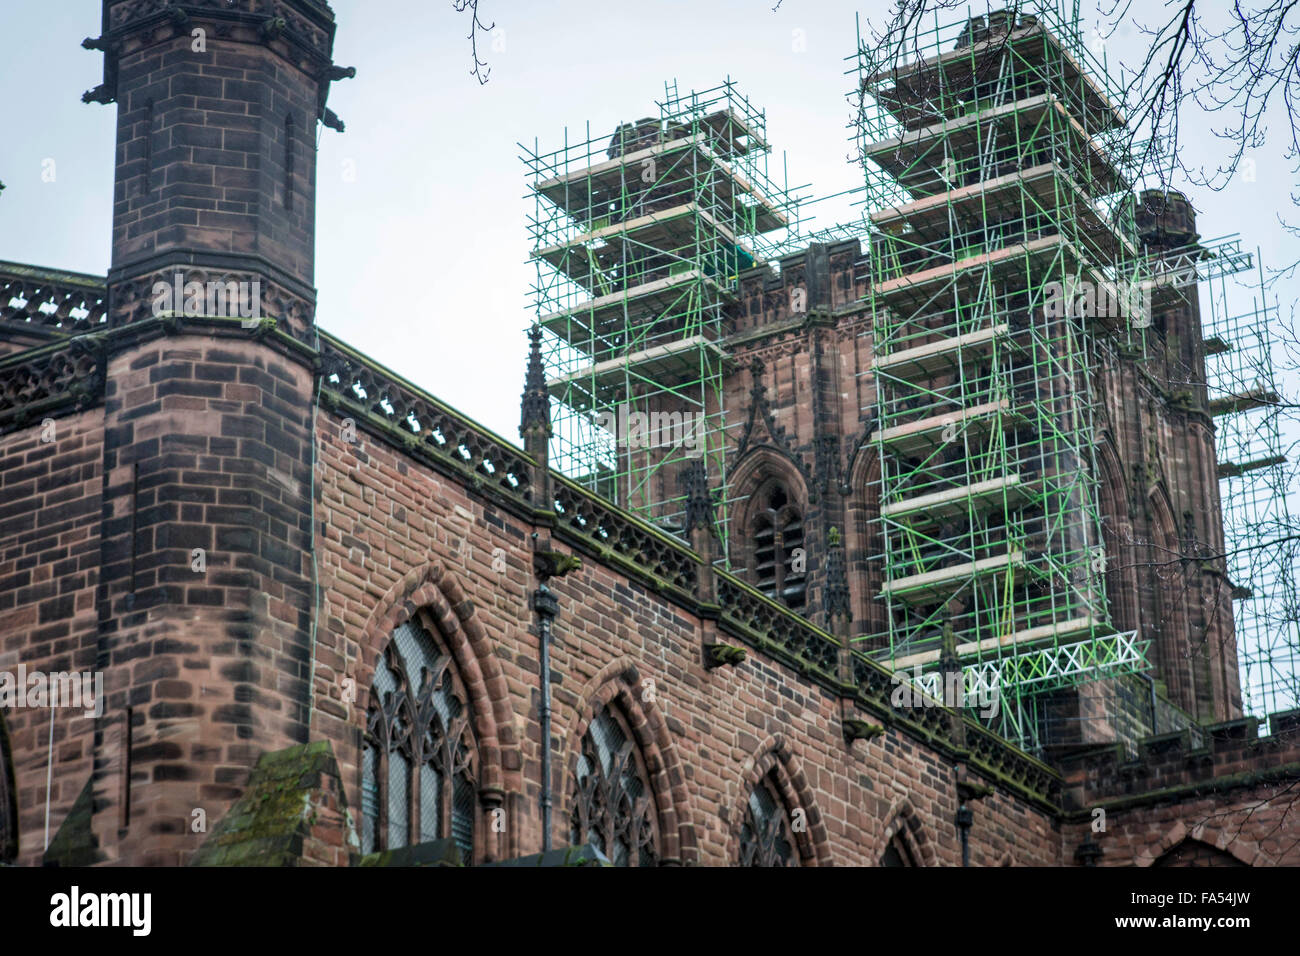 exterior photo of Chester Cathedral including scaffolding - Stock Image